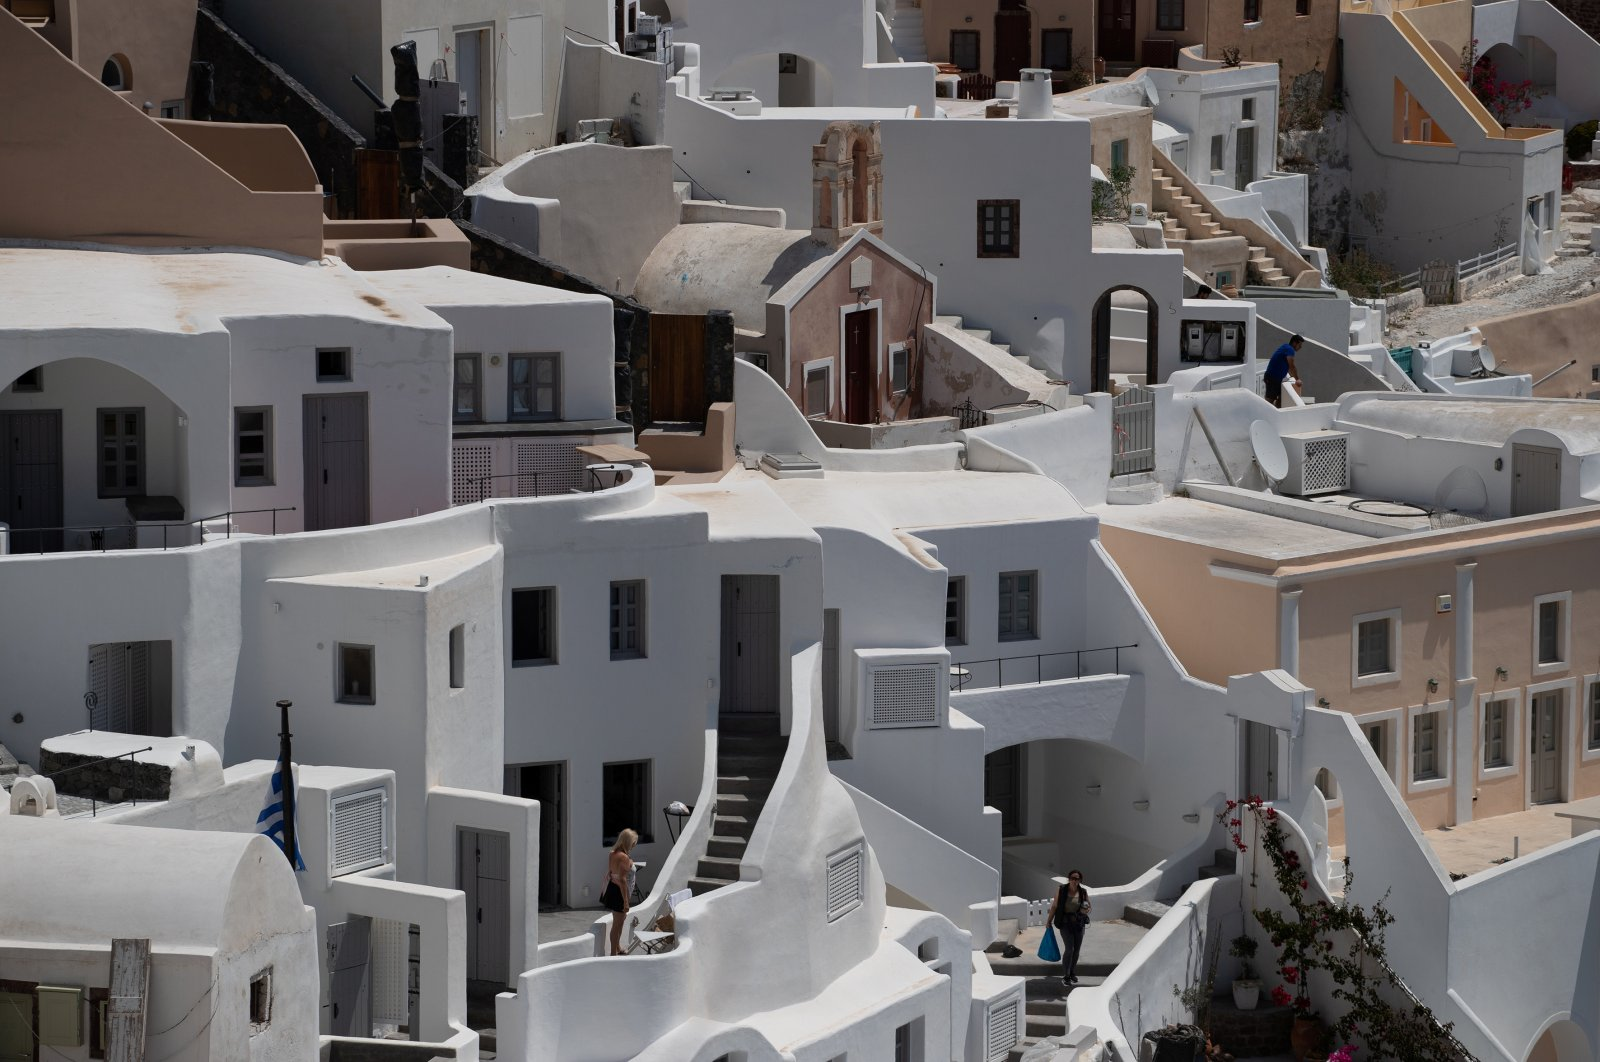 Locals make their way in deserted Oia, a popular touristic hotspot before the coronavirus outbreak, on the island of Santorini, Greece, May 7, 2020. (Reuters Photo)